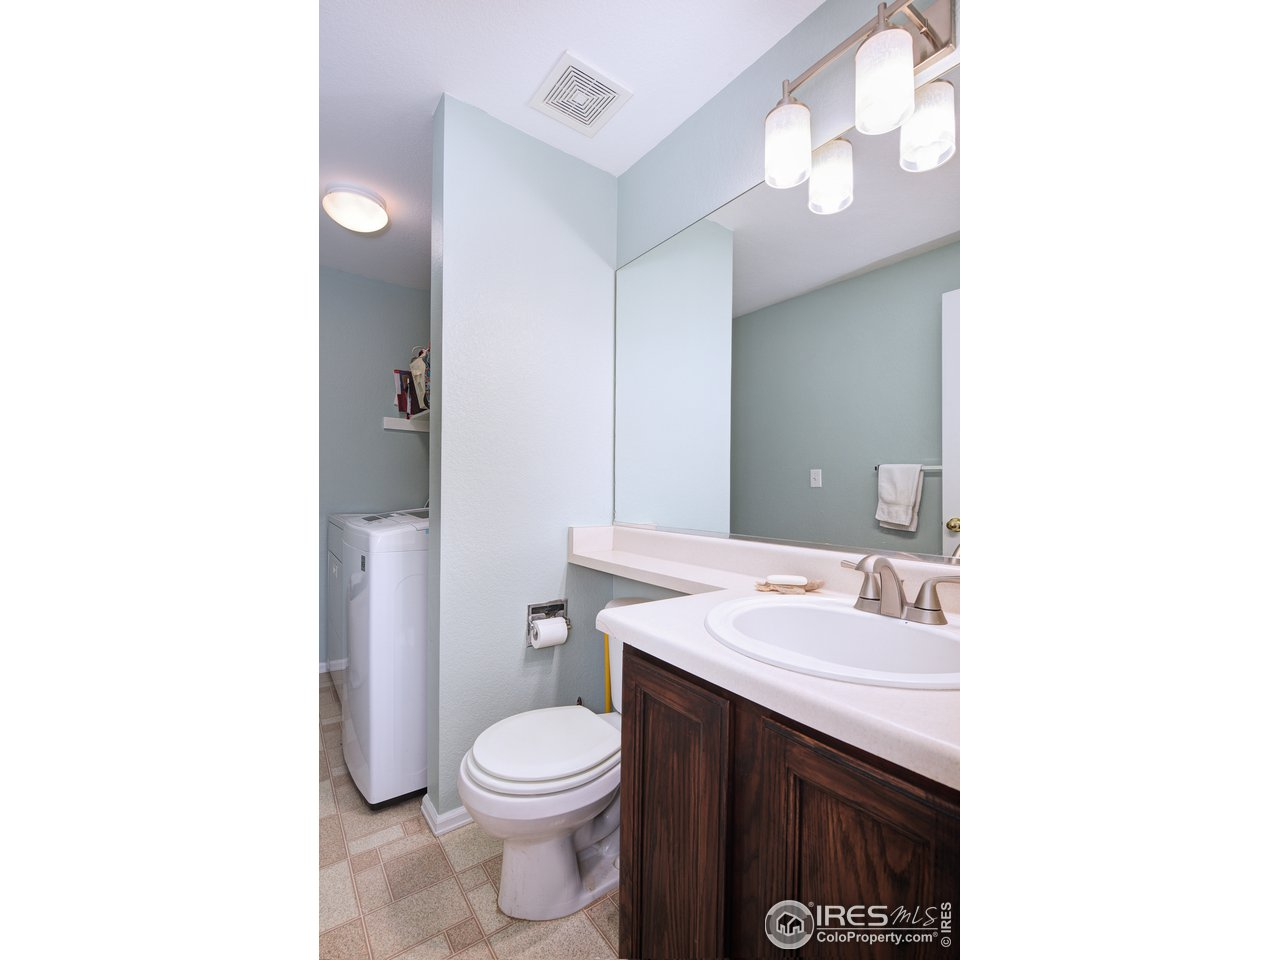 Powder room and Laundry Room